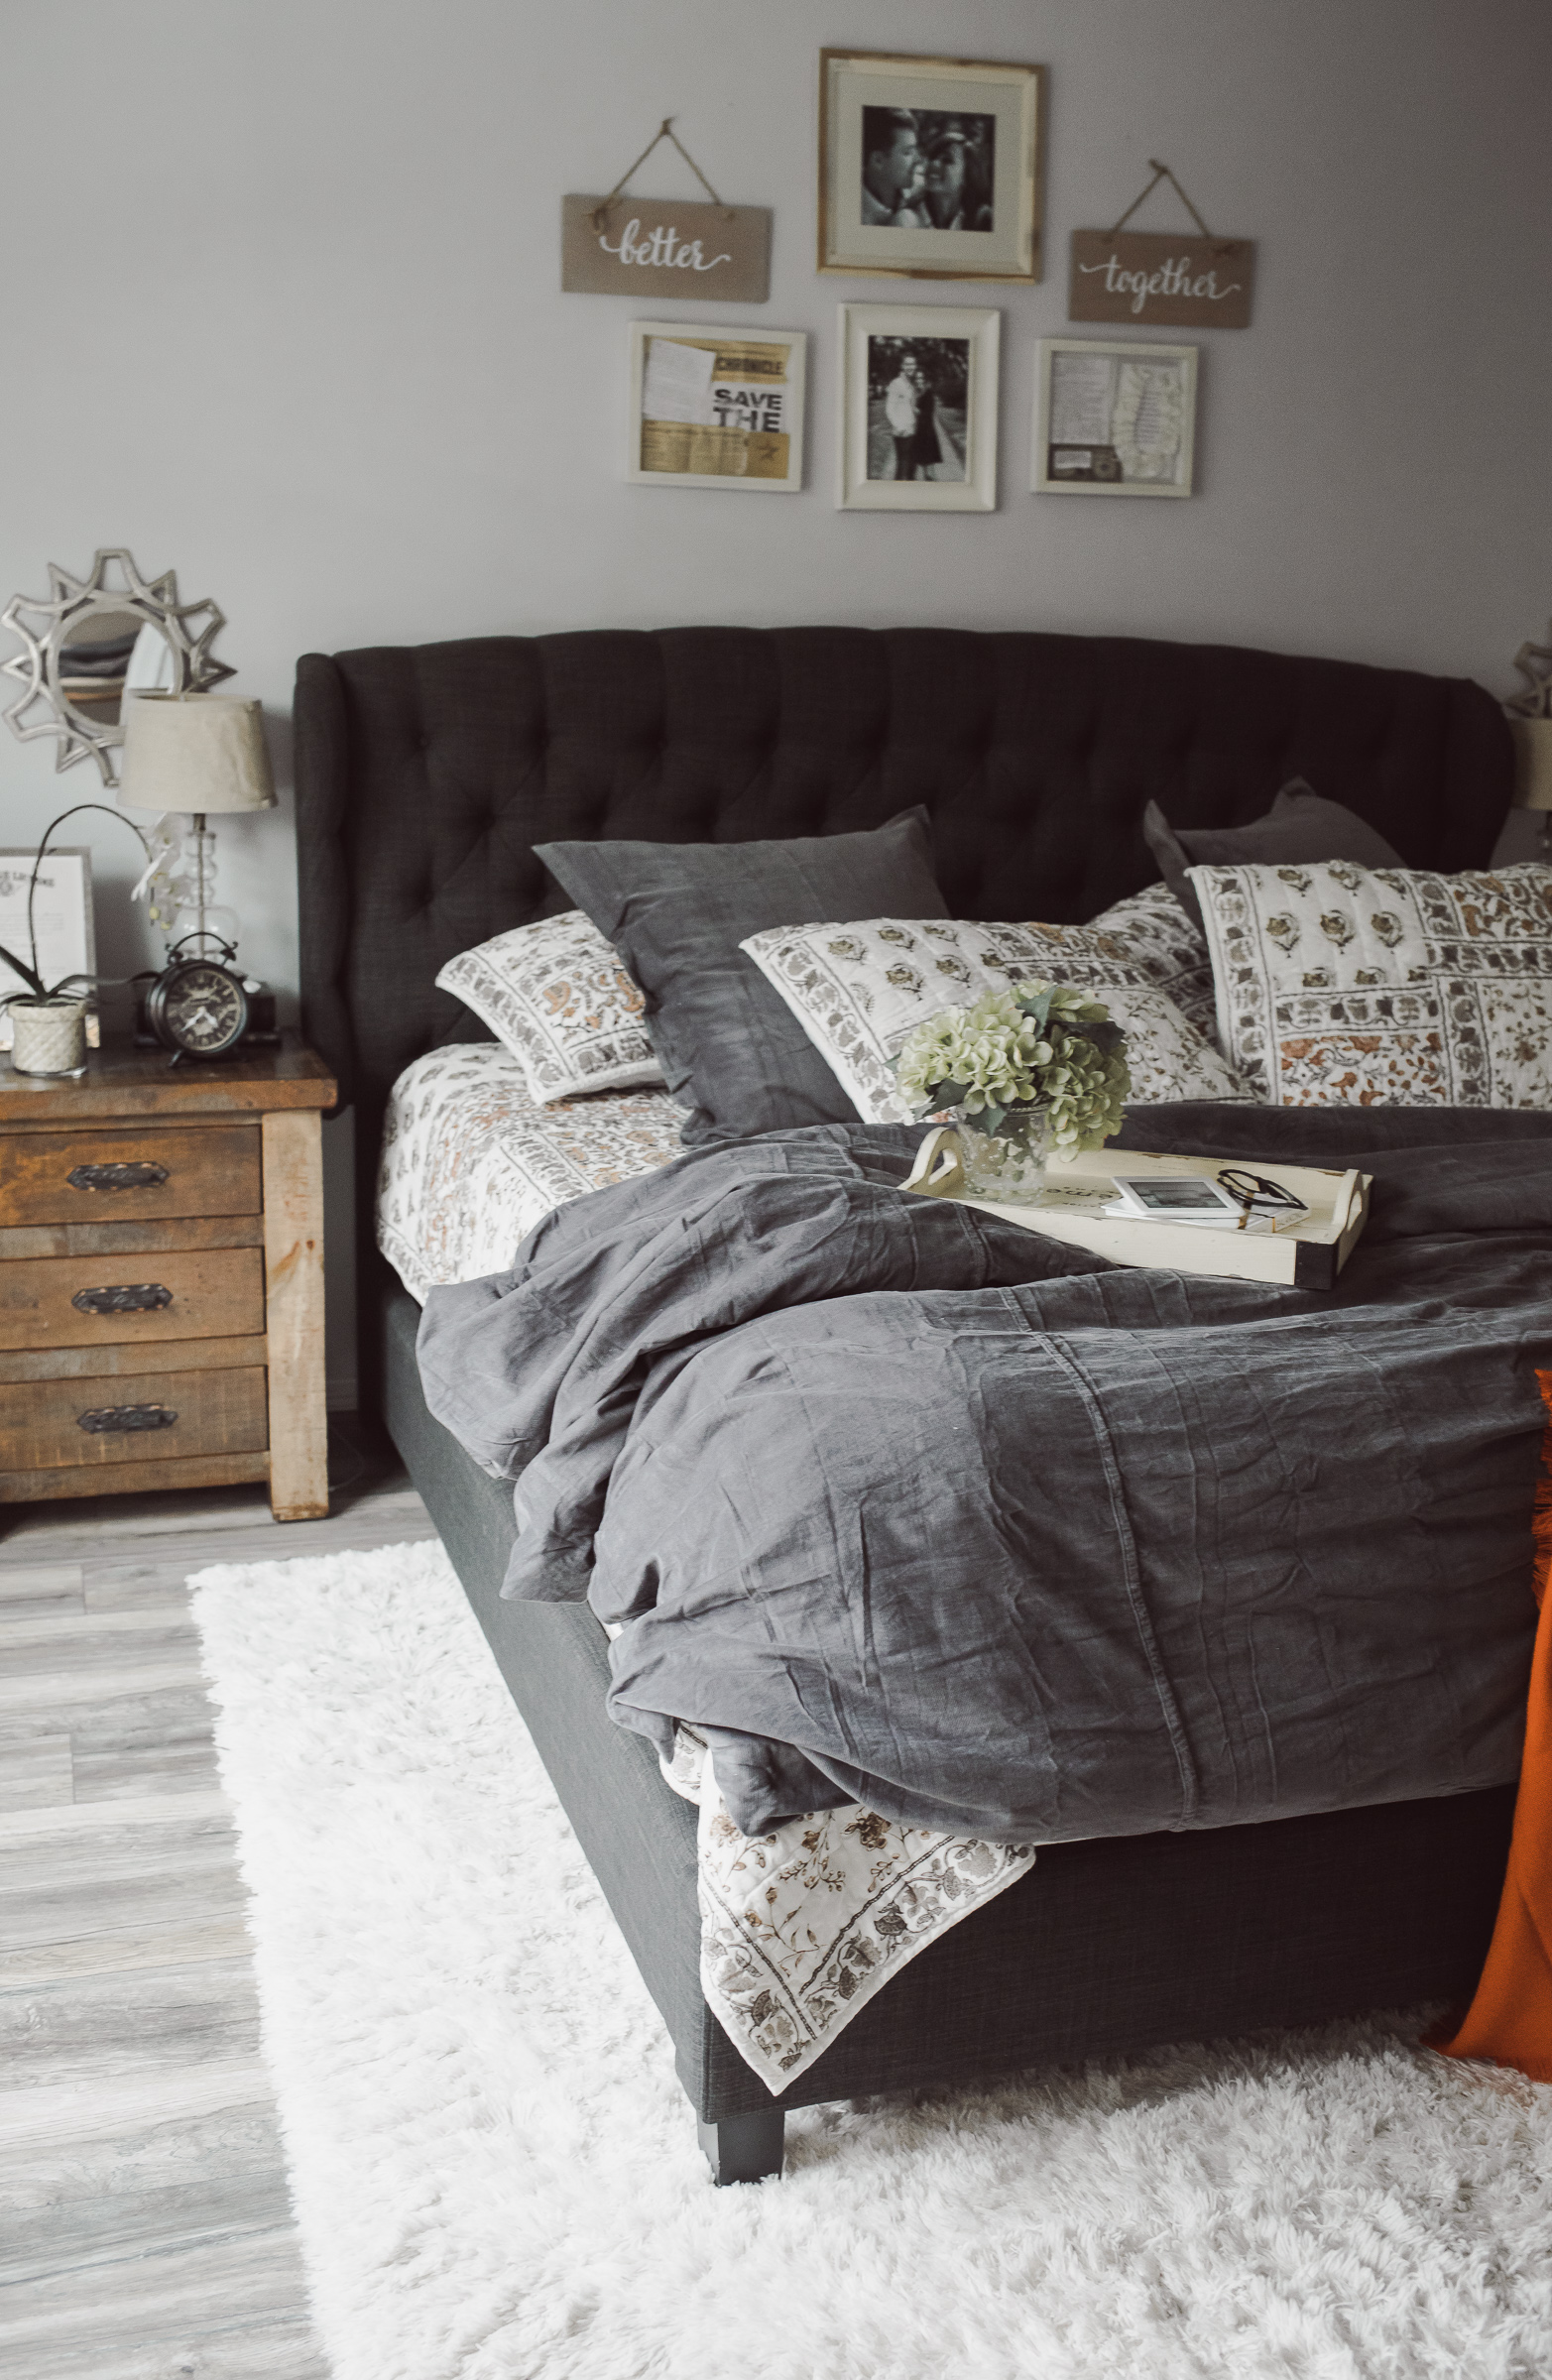 Houston lifestyle blogger Uptown with Elly Brown shares her master bedroom decor for fall